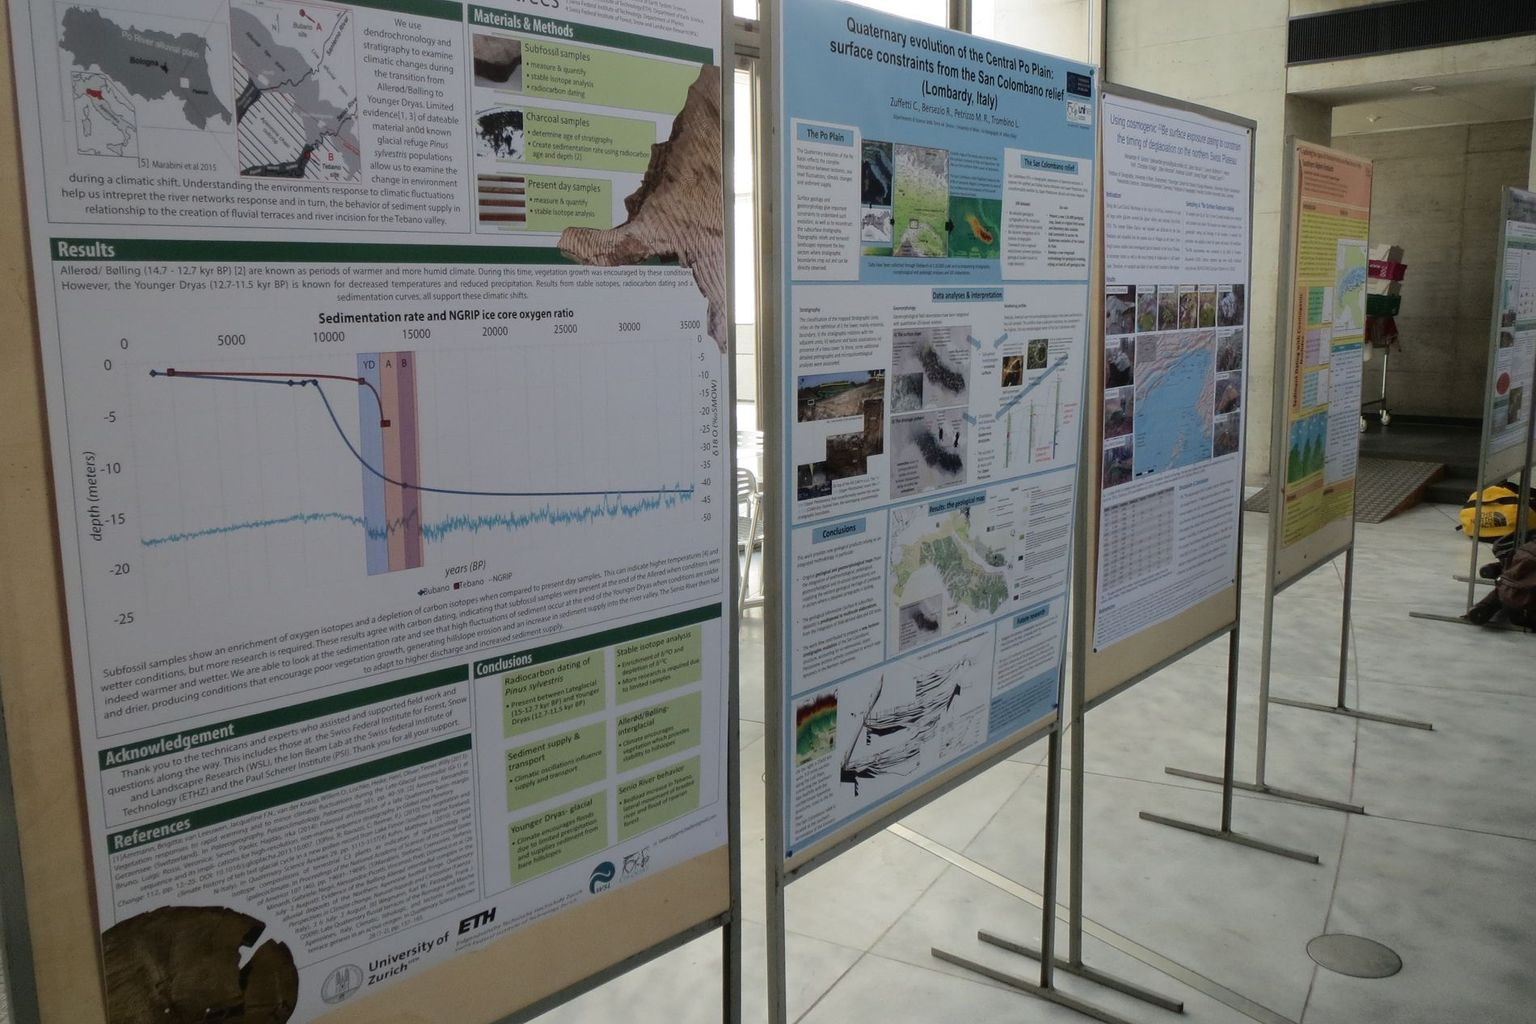 CH-QUAT Meeting 2017: Posters